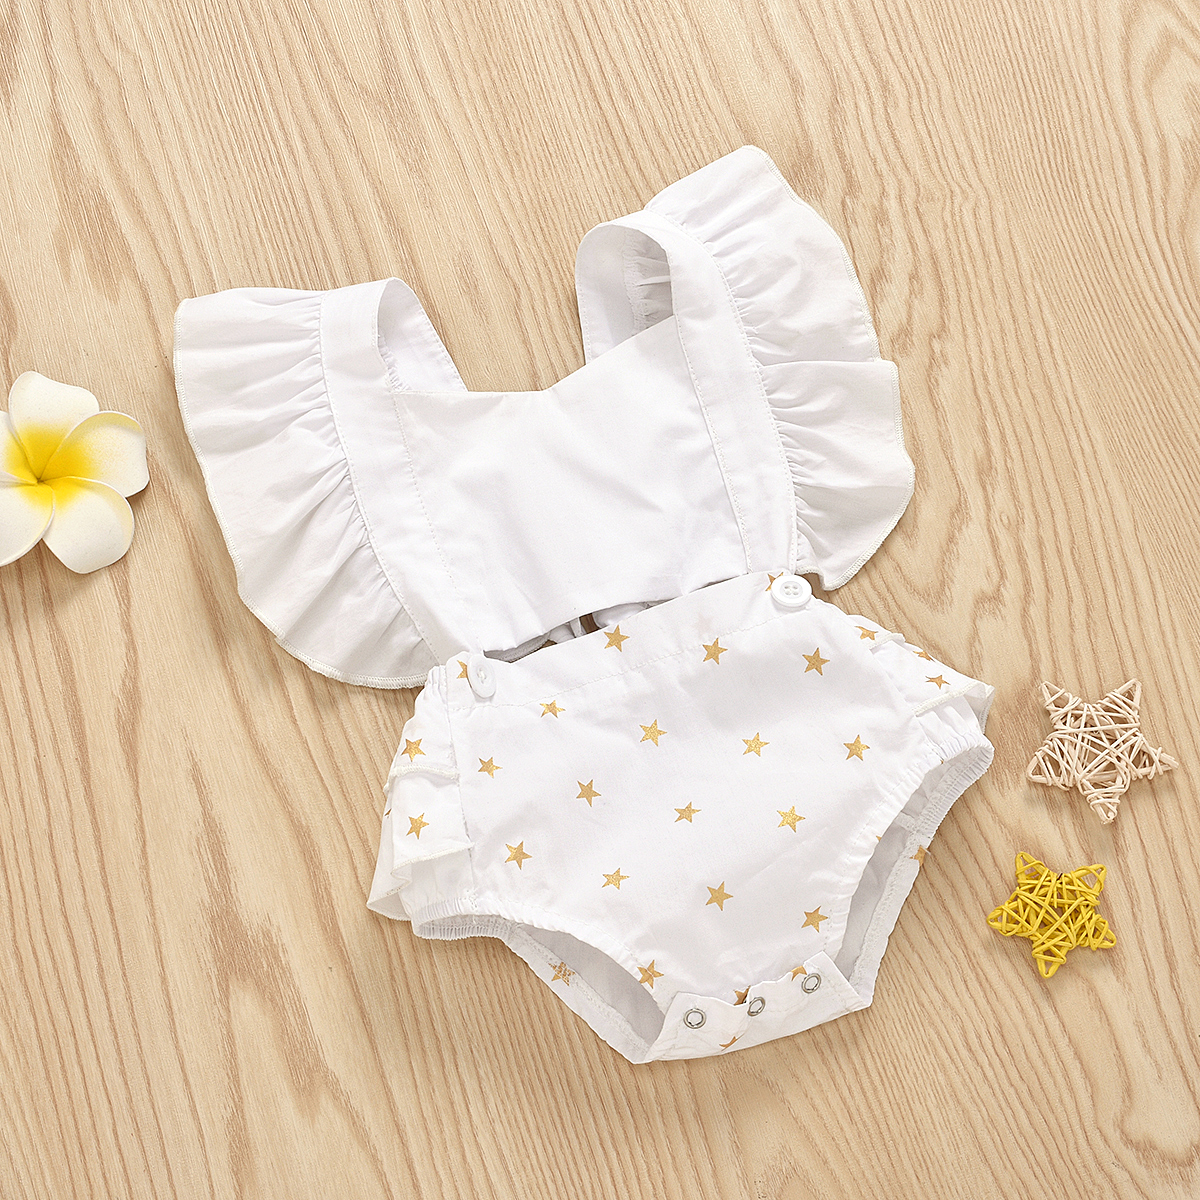 Infant Baby Girls Floral Patchwork Romper Back Cross Jumpsuit Playsuit Clothes Outfits 0-24M